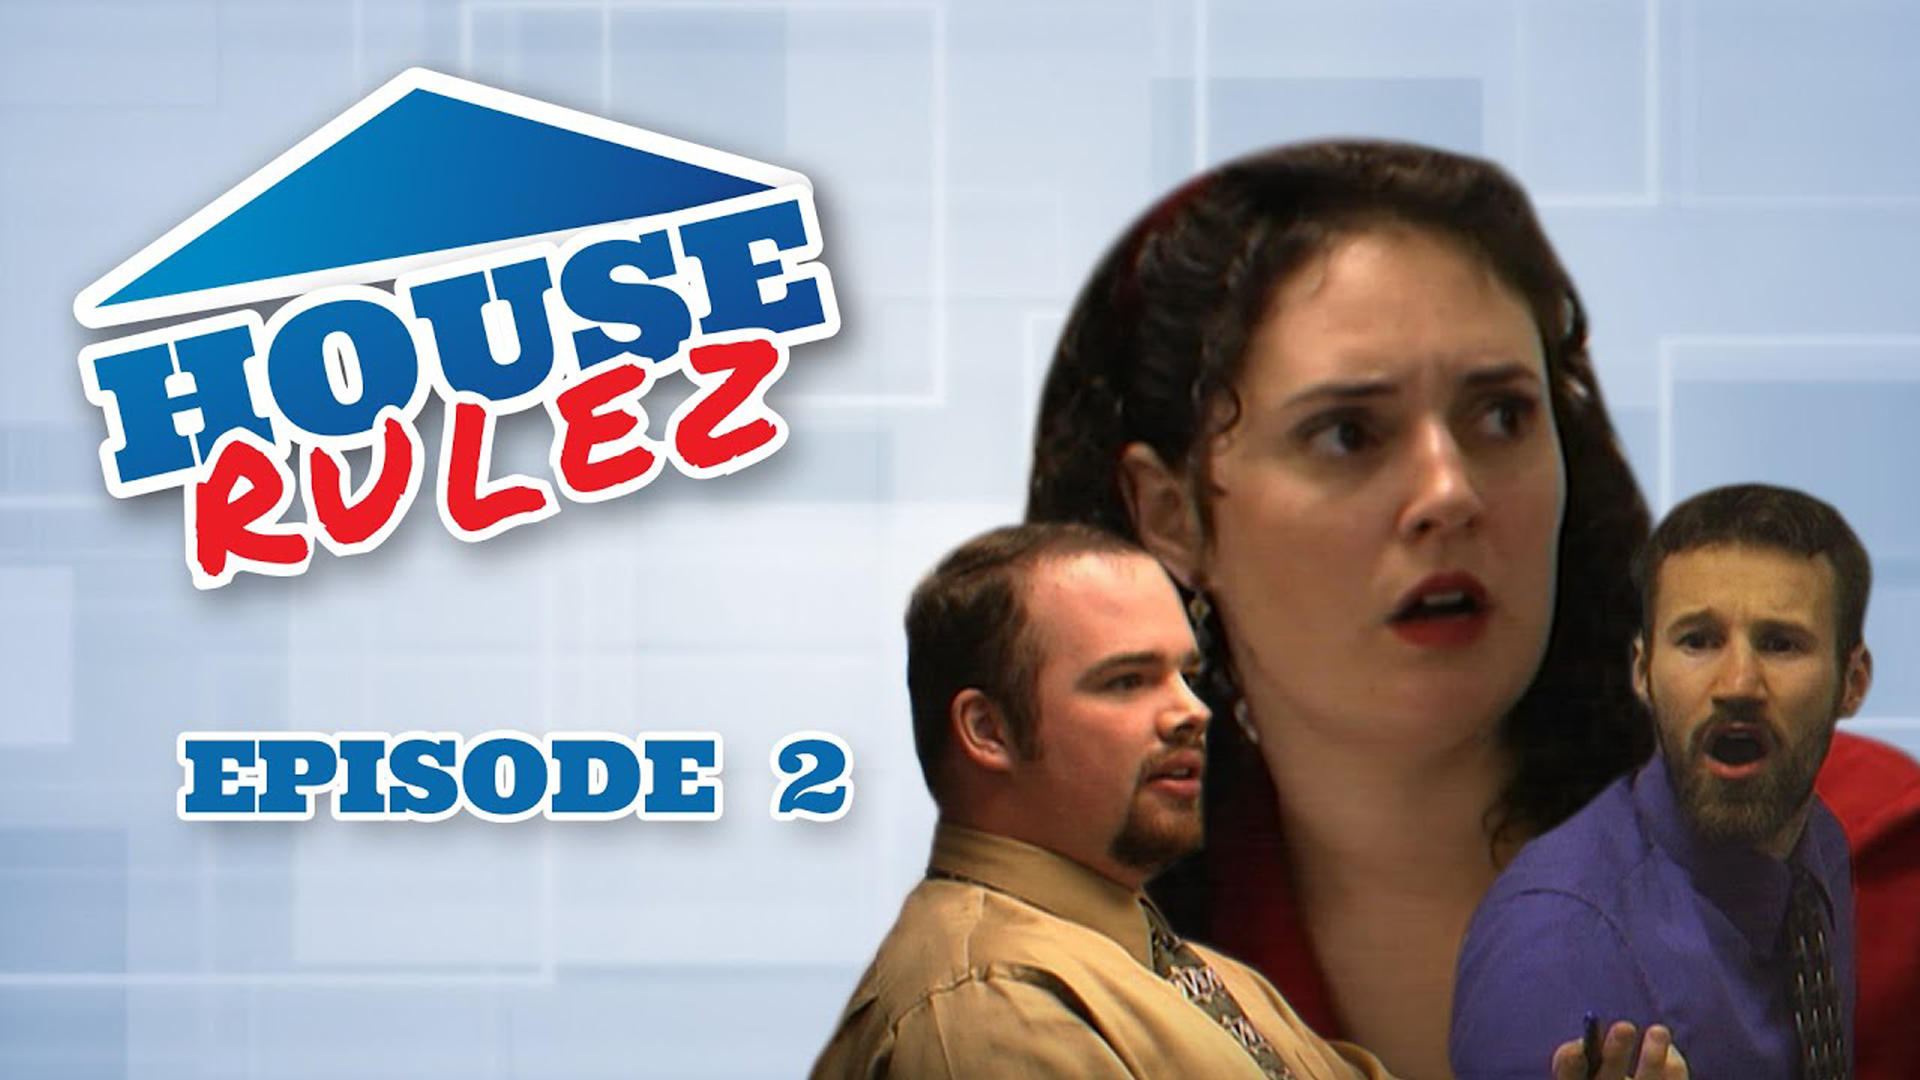 House Rulez Episode 2